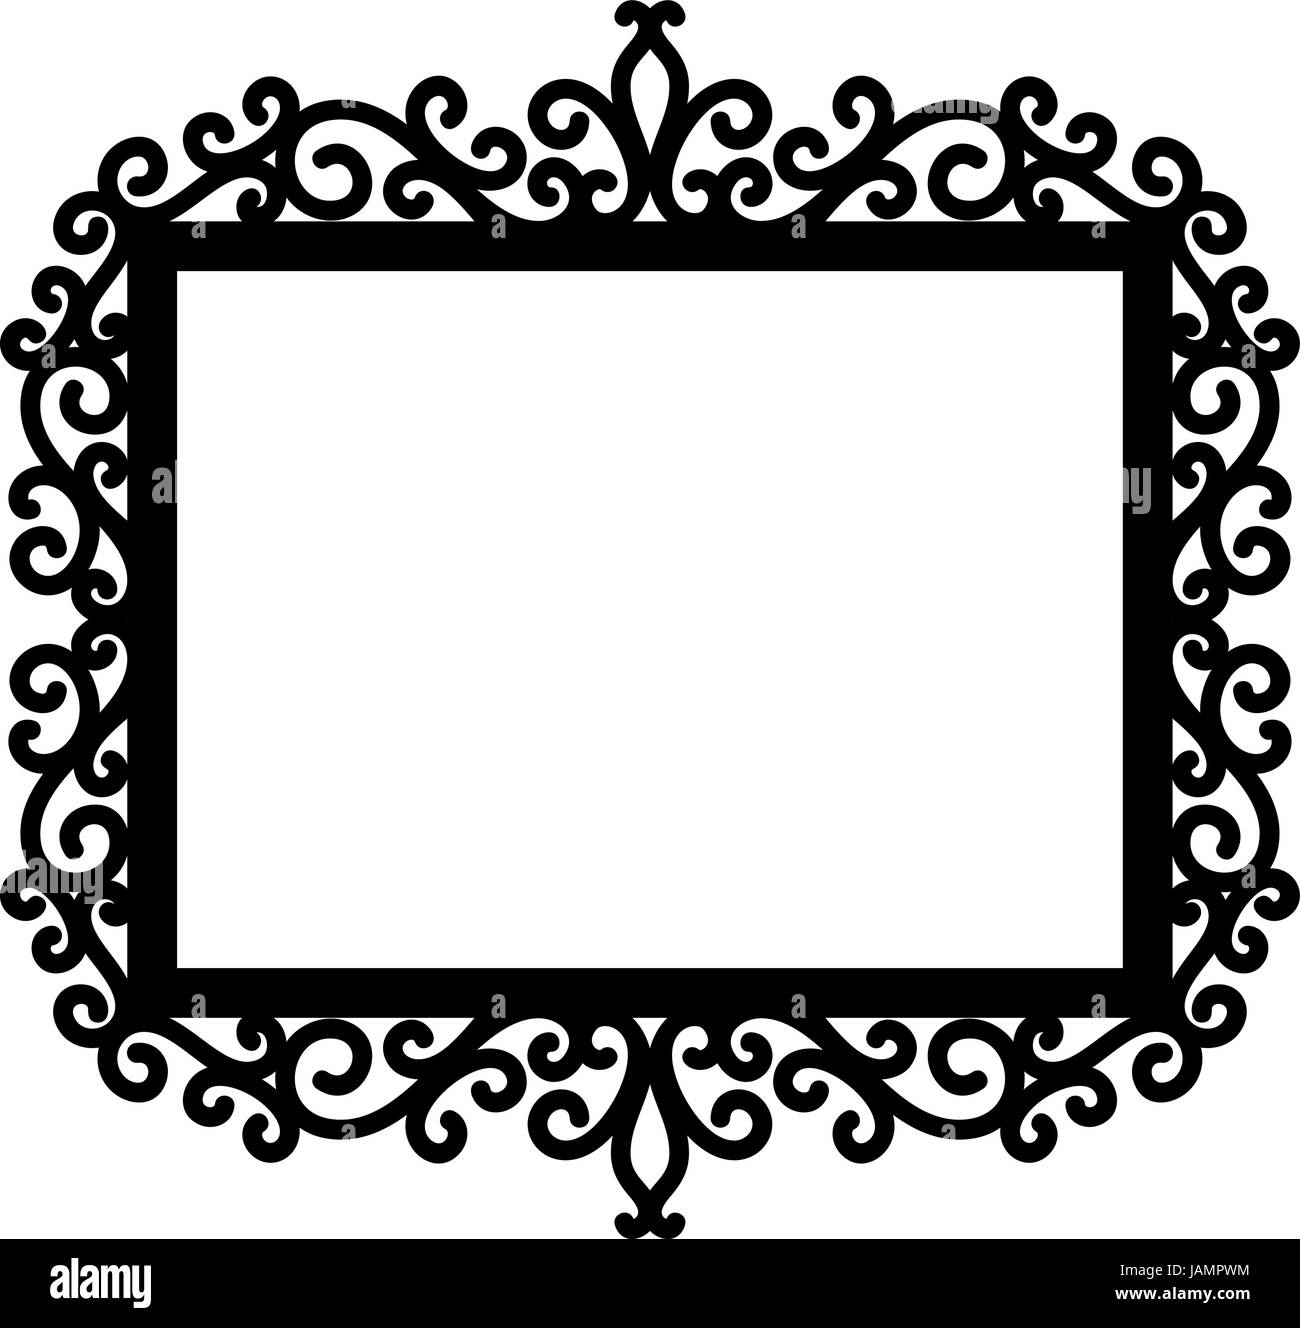 decorative frame silhouette in black isolated on white background ...